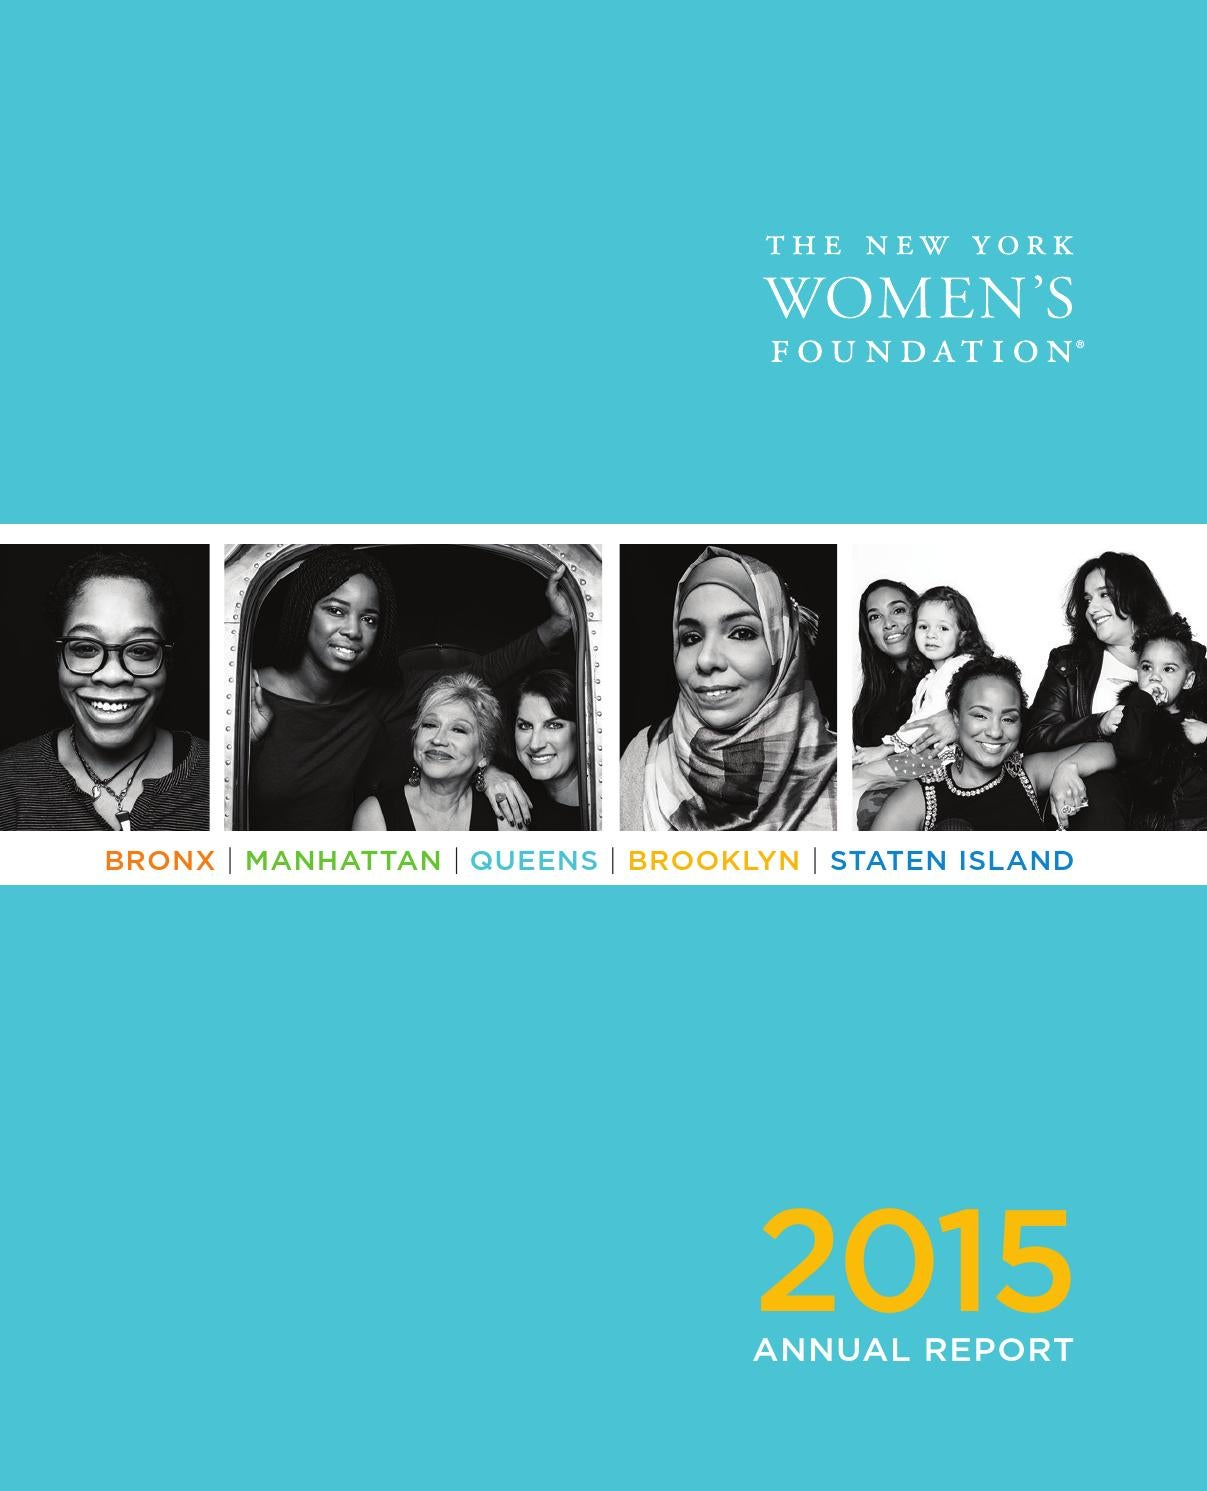 Women share how mary tyler moore shaped culture impacted social change cbs local - The New York Women S Foundation S 2015 Annual Report By The New York Women S Foundation Issuu